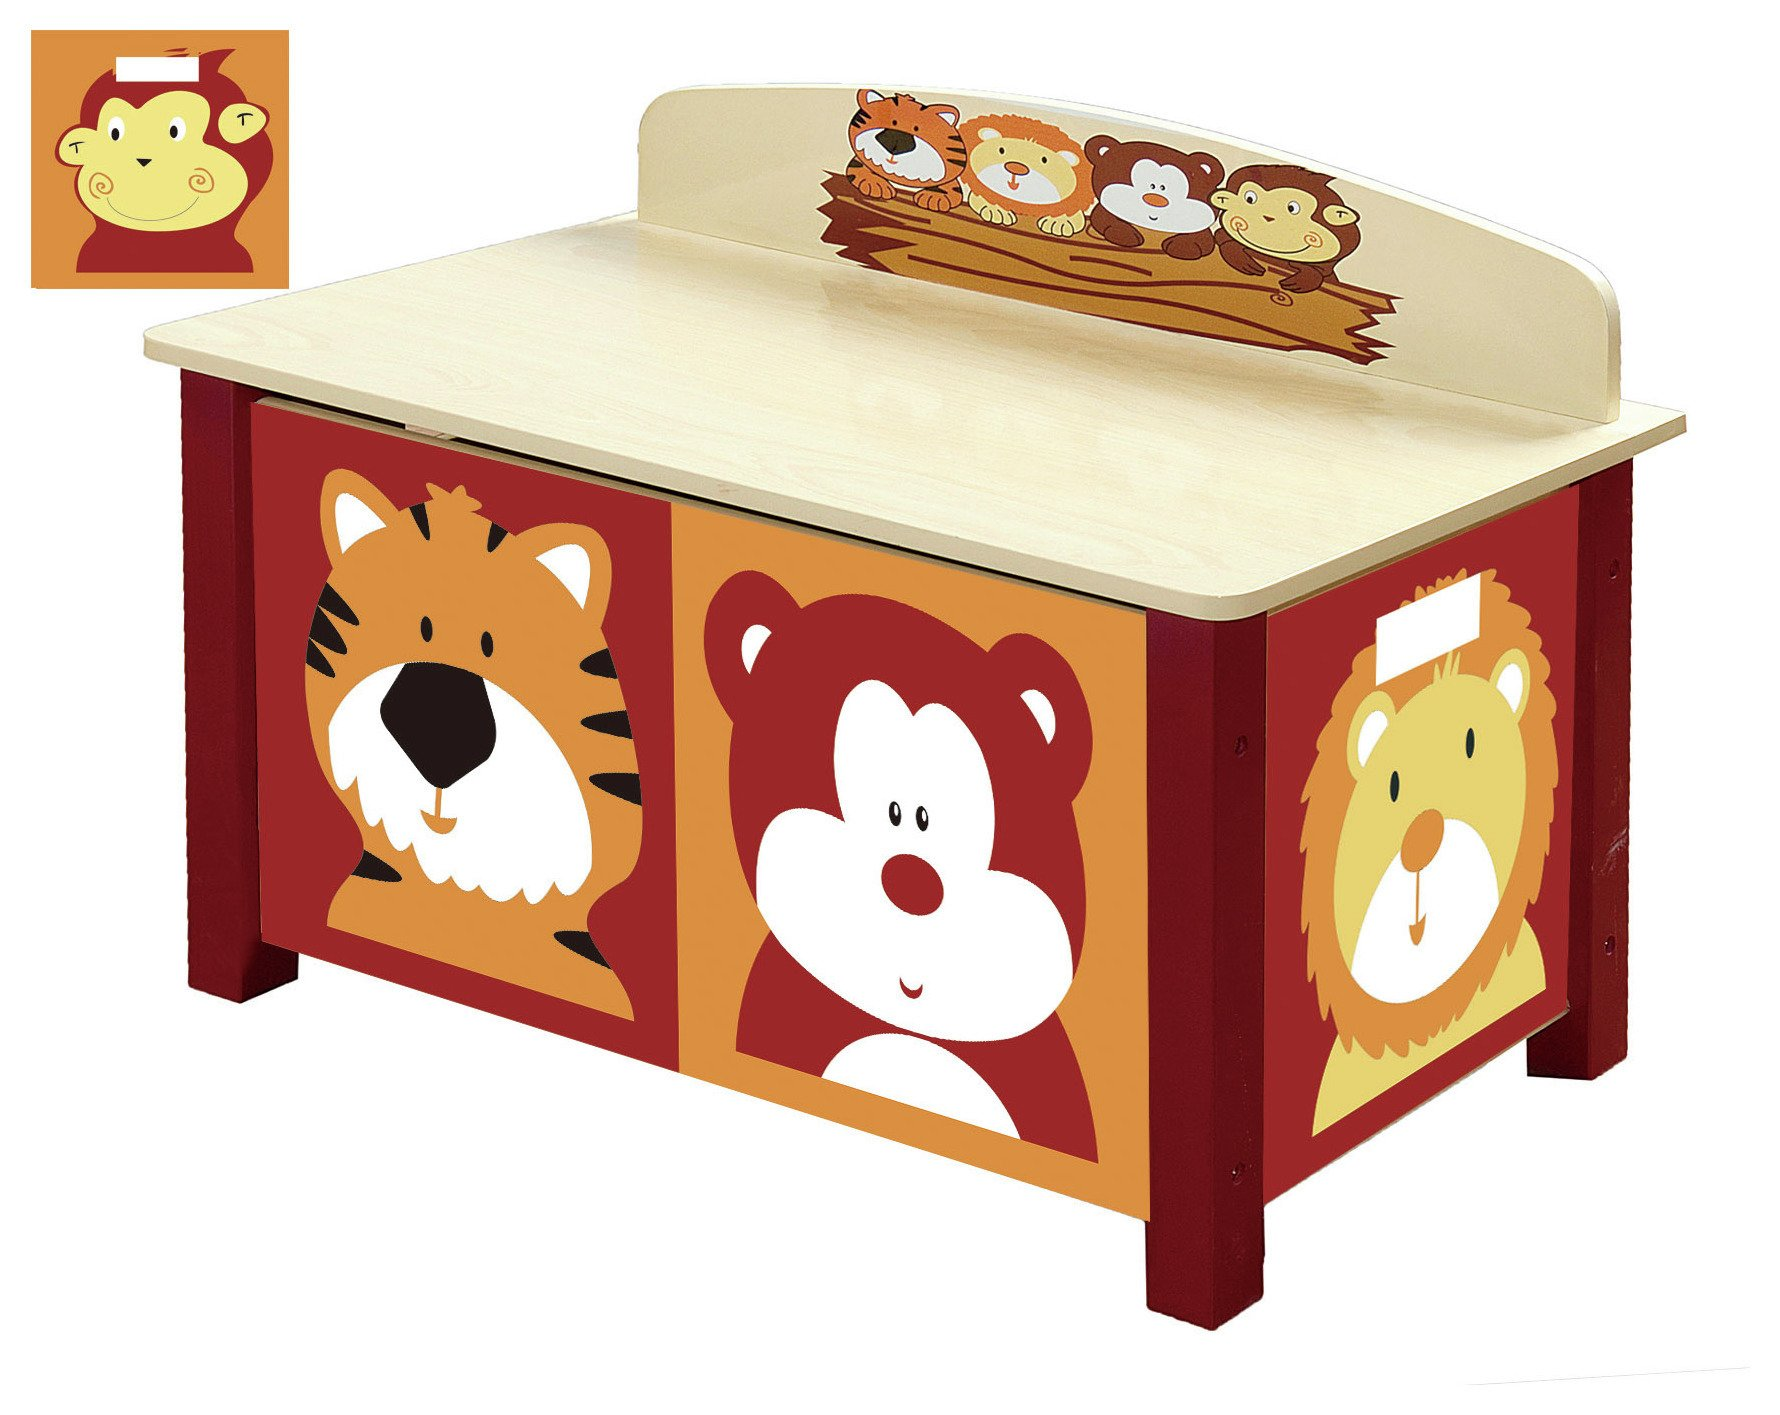 Image of Jungle Big Toy Box.